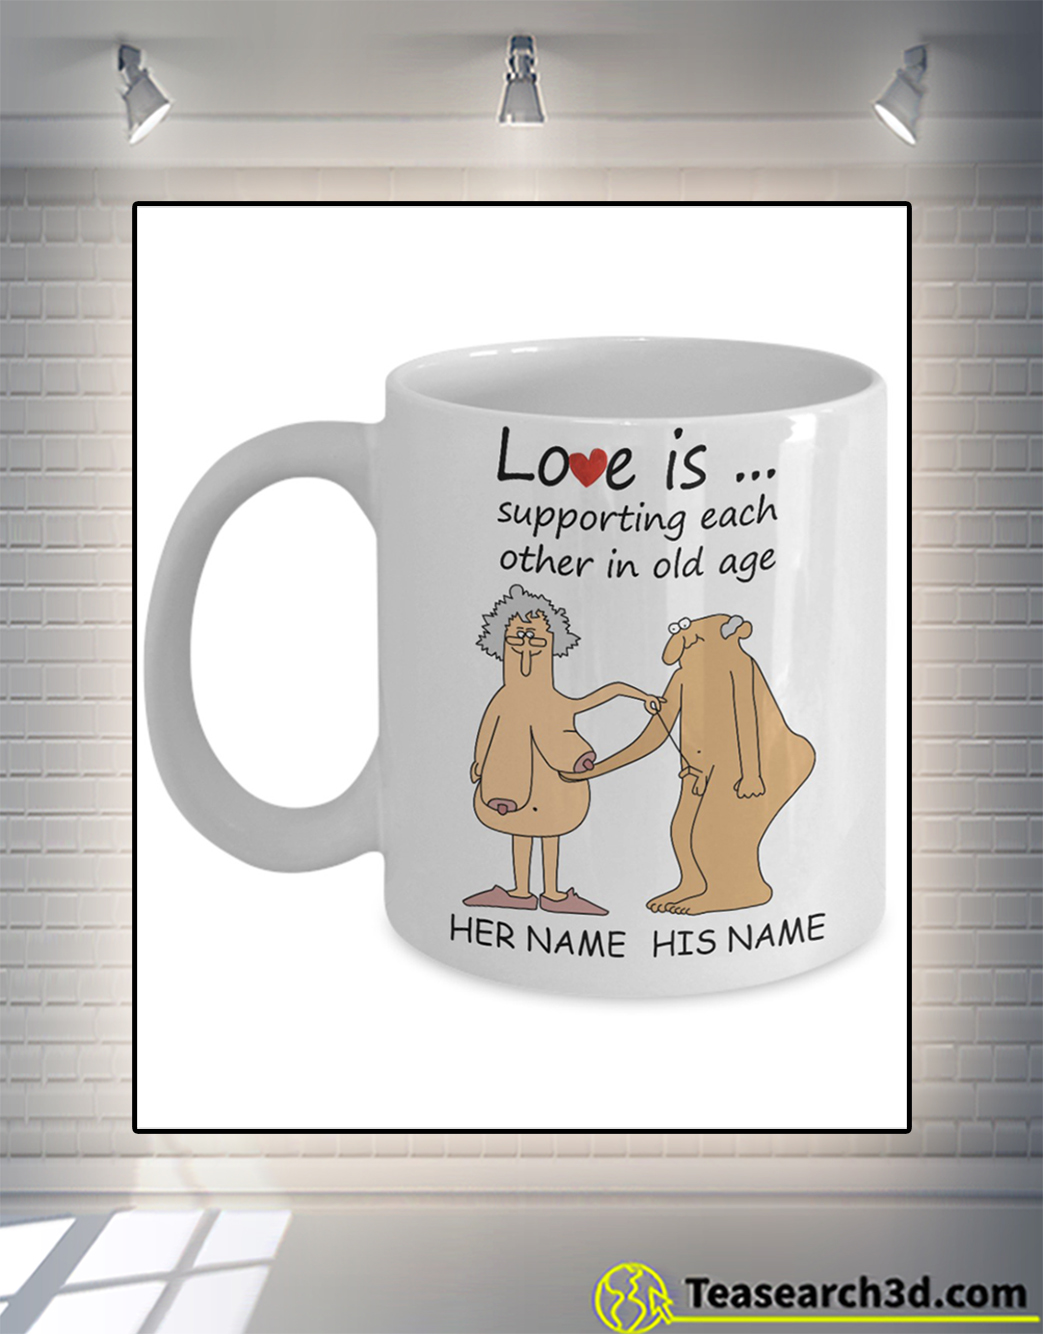 Personalized custom name love is supporting each other in old age mug 11oz